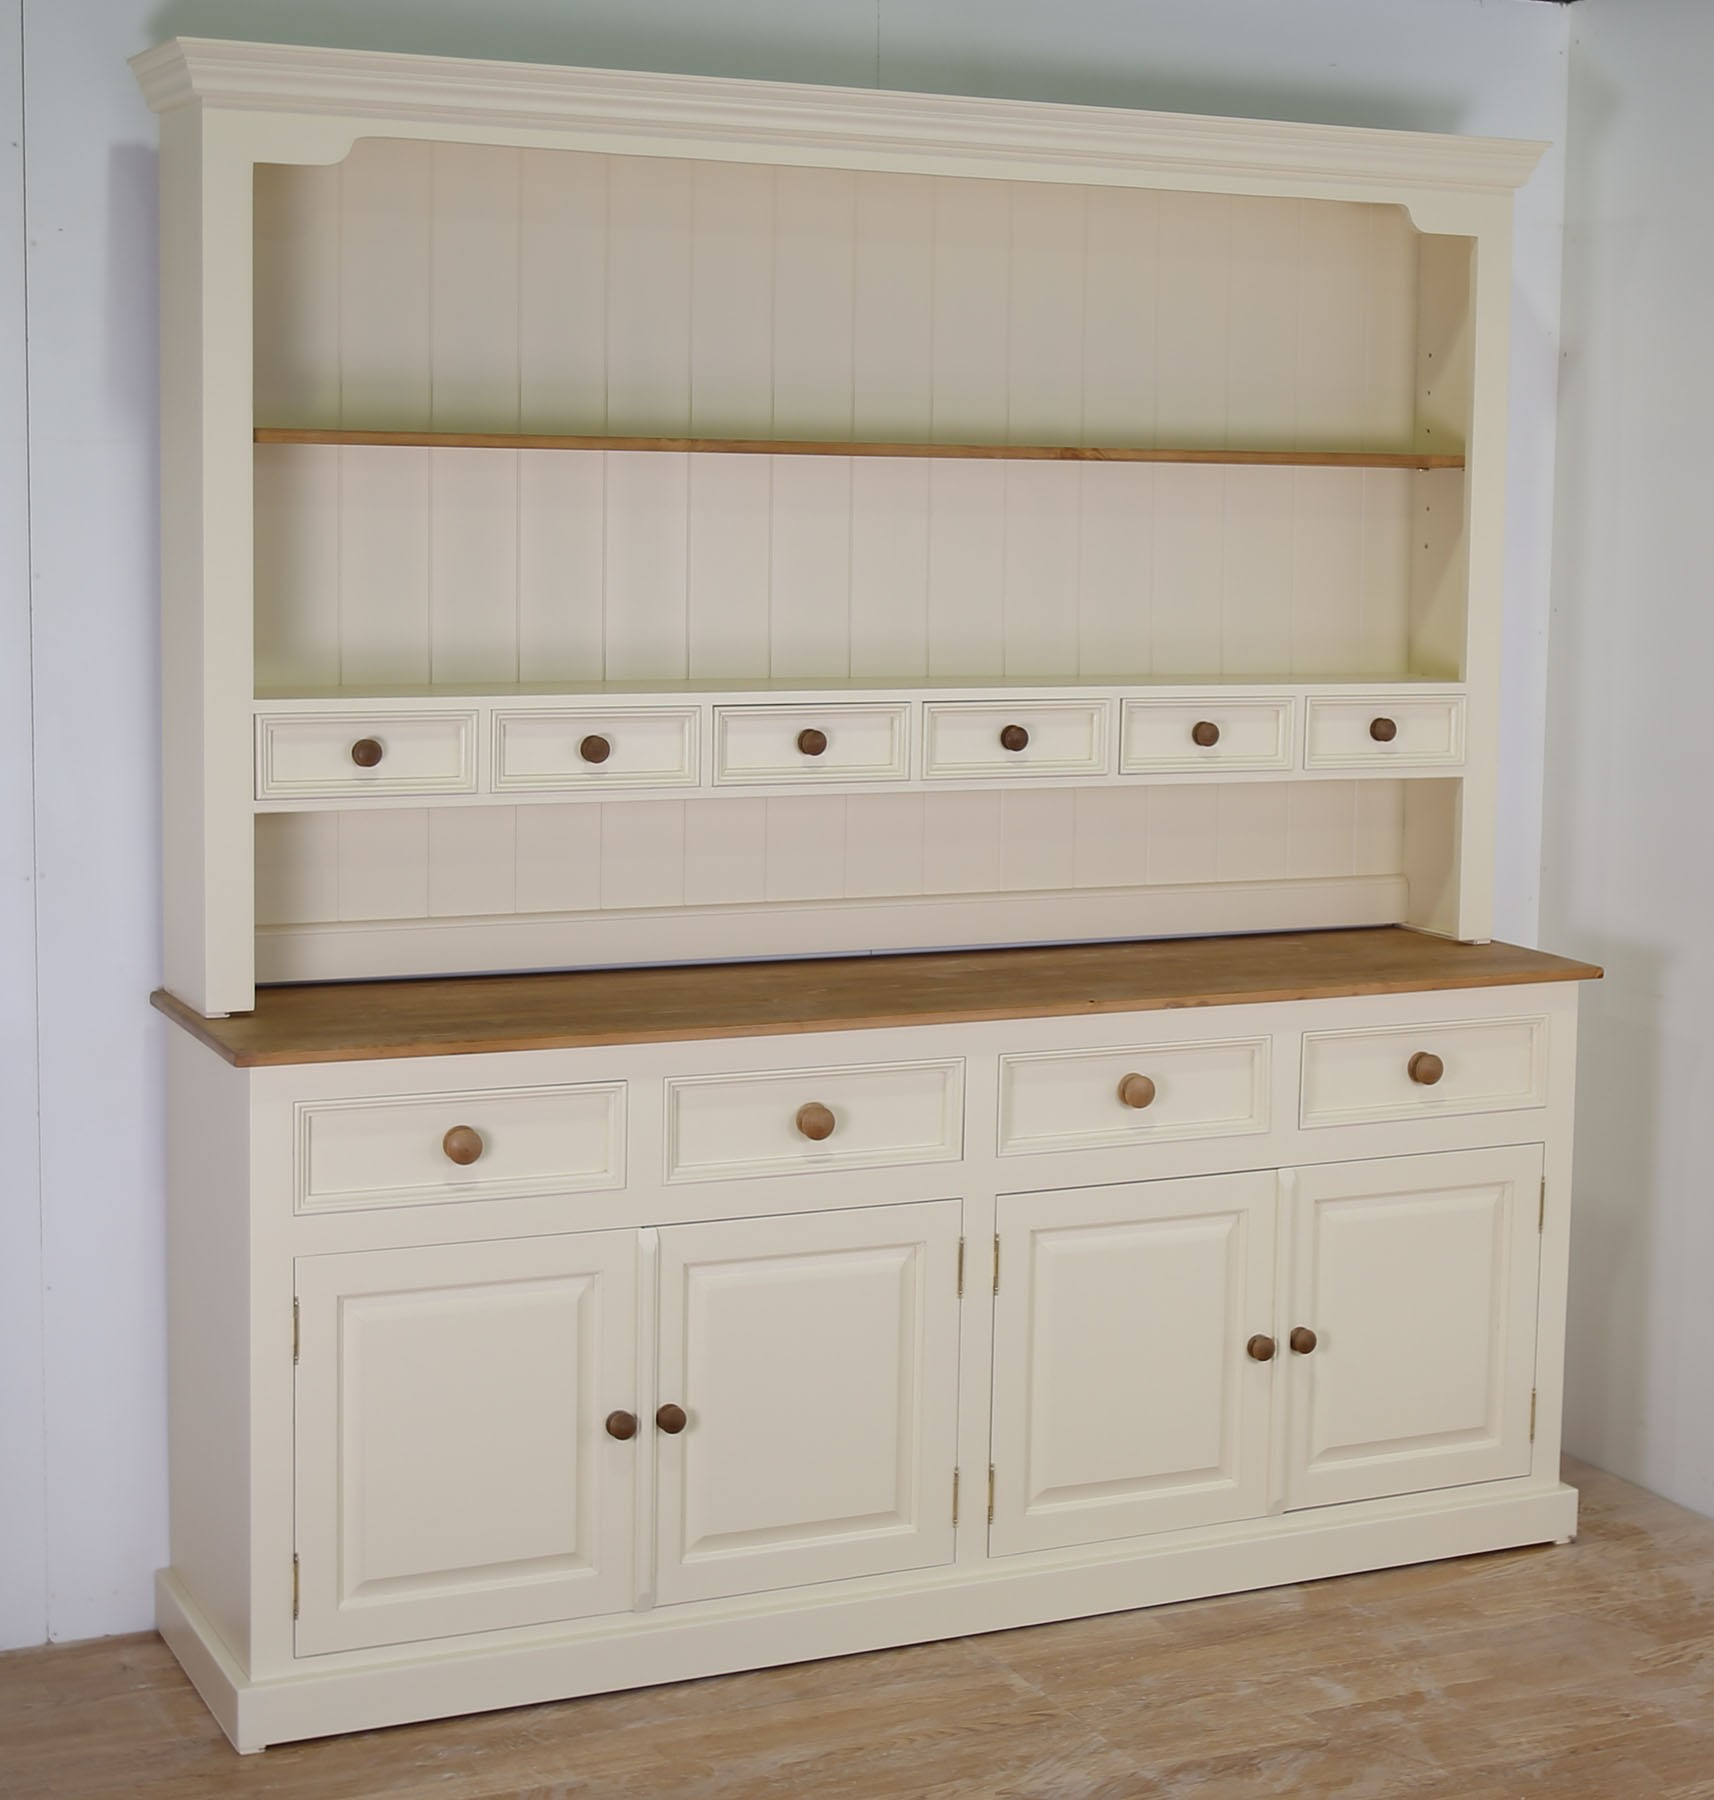 Ideas of ... MOTTISFONT SOLID PINE PAINTED LARGE 4 DOOR WELSH DRESSER IN 4 large welsh dresser